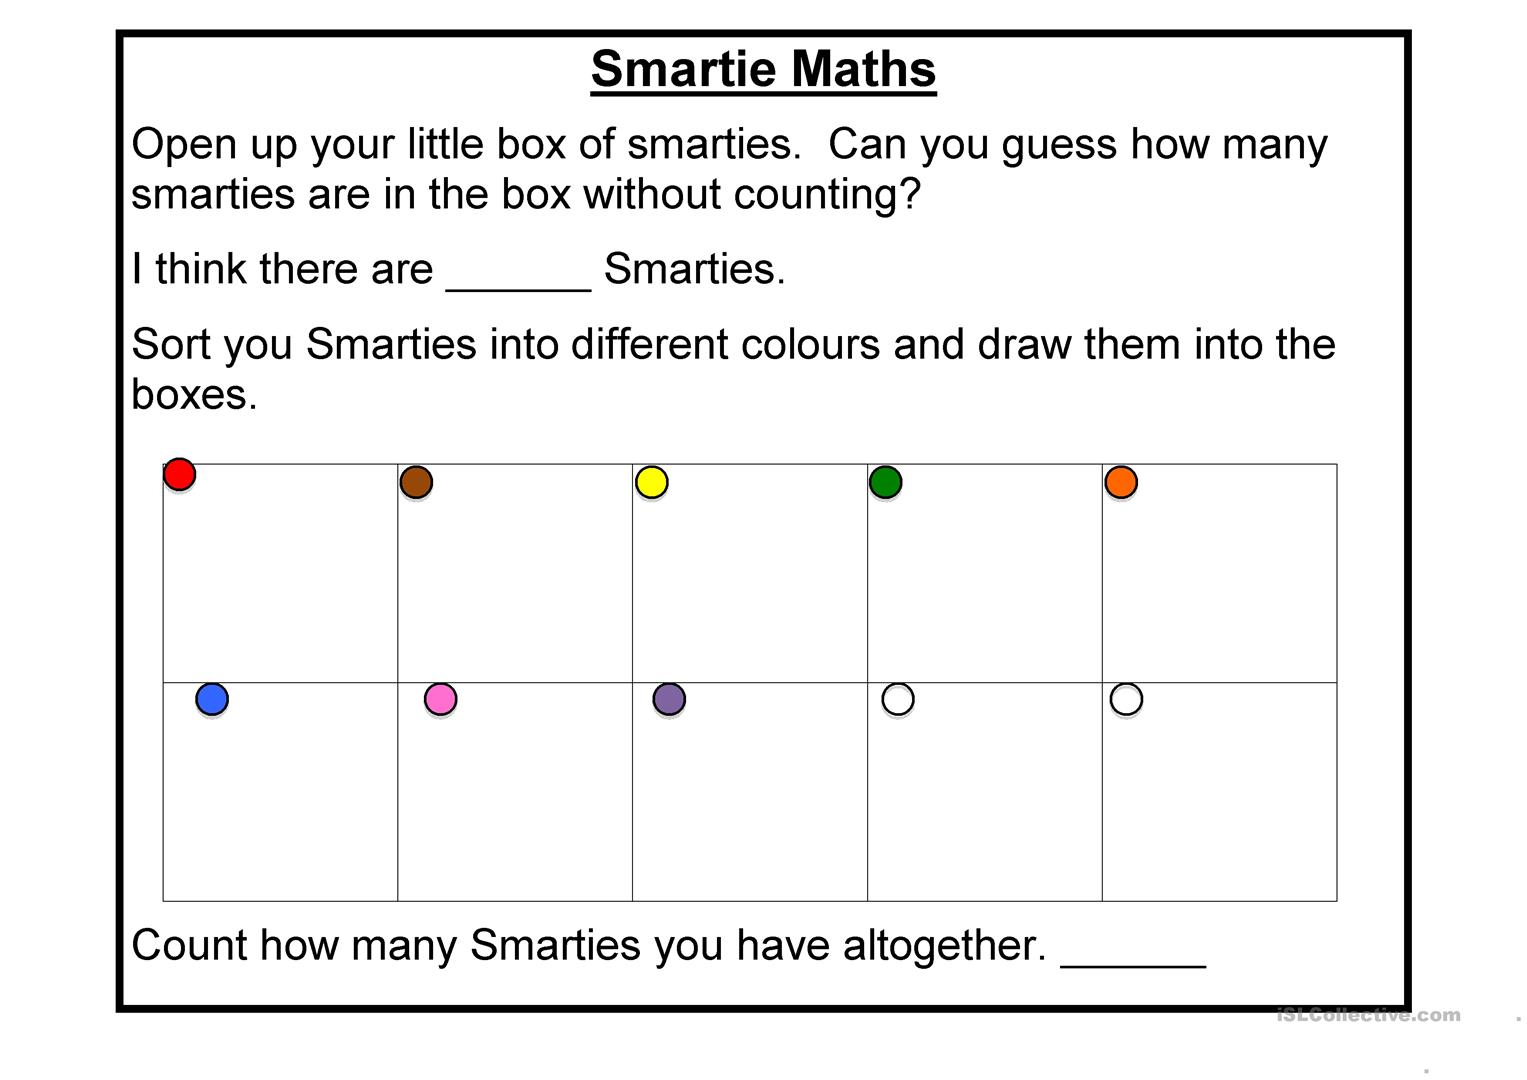 Smartie Maths Worksheet